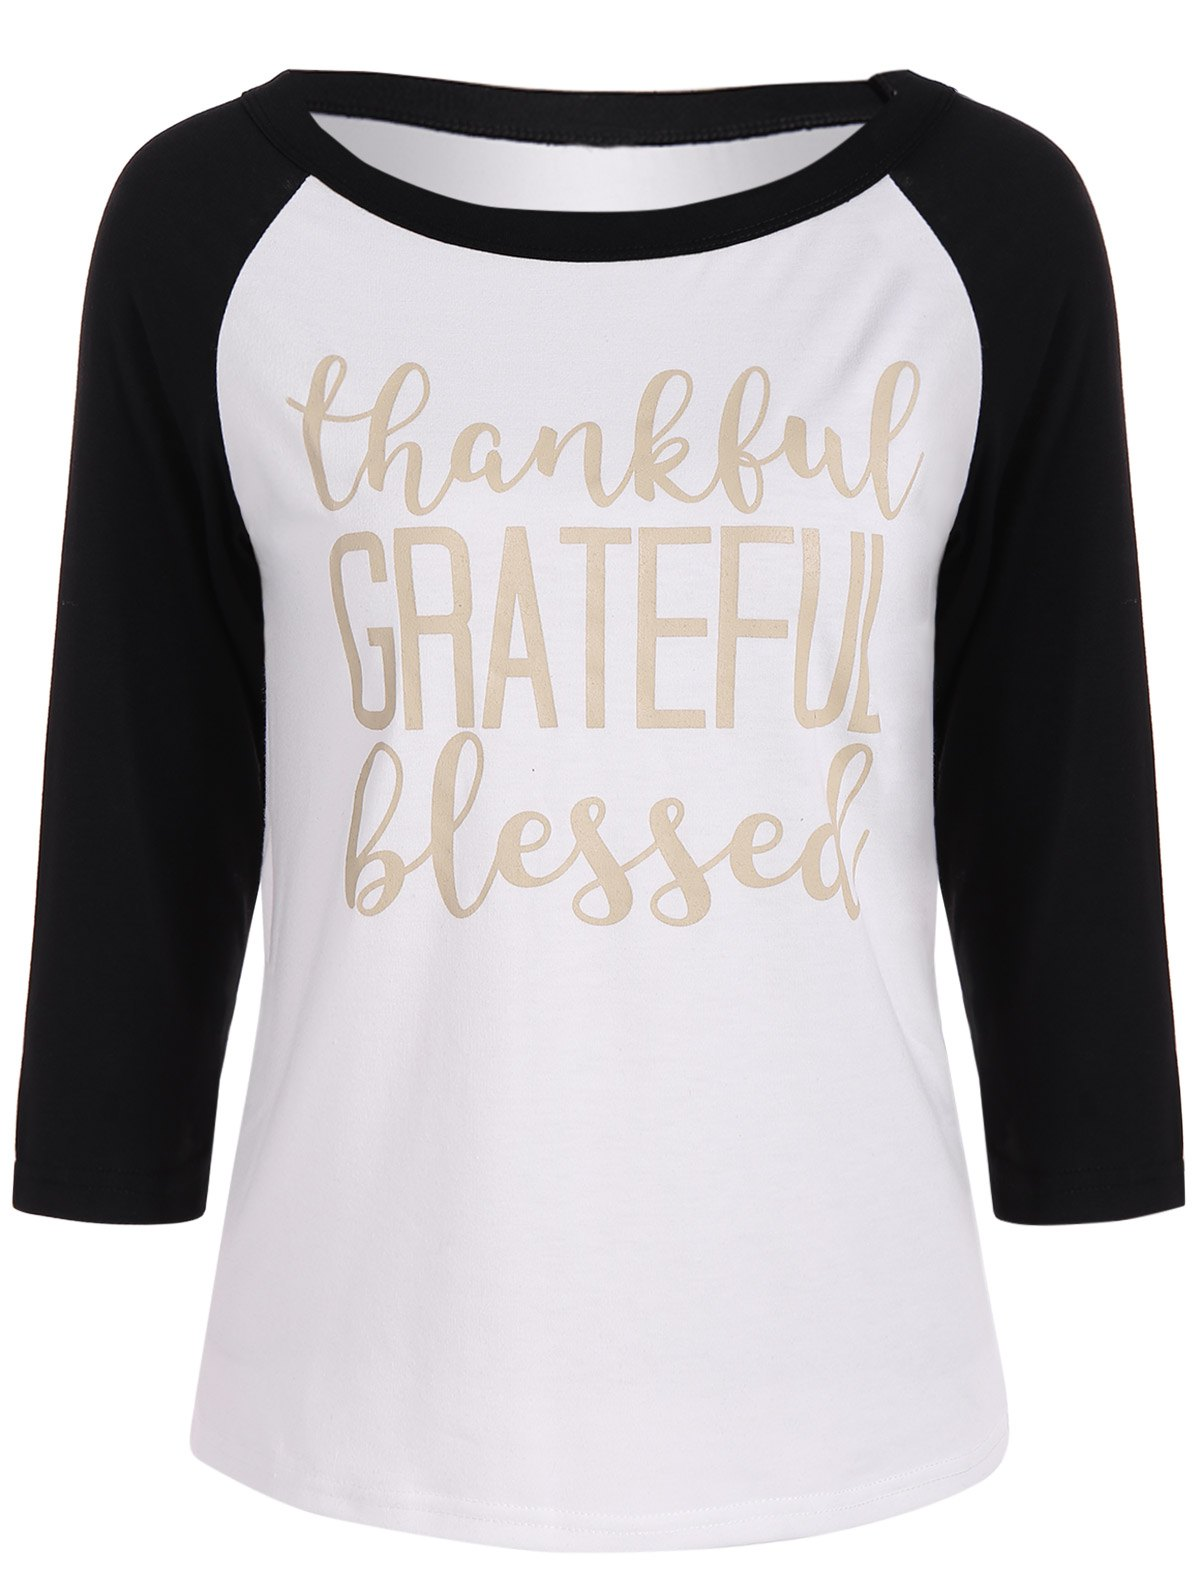 Thankful Print Raglan Sleeve Baseball Tee Shirts Funny Graphic TeesWOMEN<br><br>Size: M; Color: WHITE AND BLACK; Material: Cotton,Polyester; Shirt Length: Regular; Sleeve Length: Three Quarter; Collar: Scoop Neck; Style: Fashion; Season: Fall,Spring; Embellishment: Spliced; Pattern Type: Letter; Weight: 0.270kg; Package Contents: 1 x Tee;